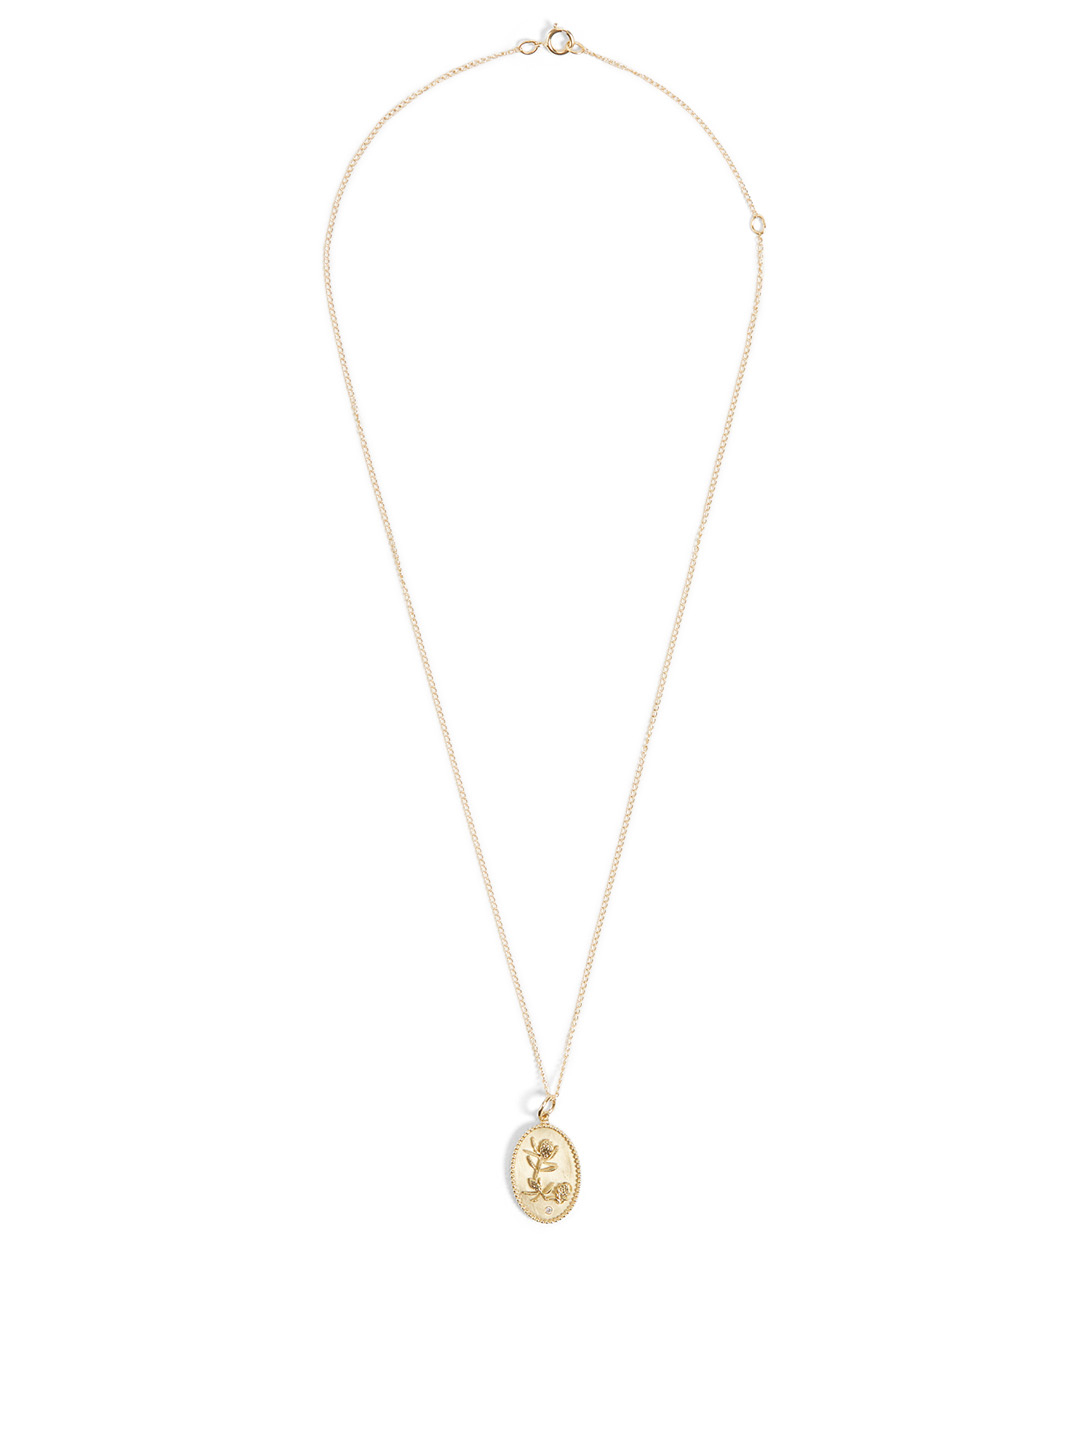 ZAHAVA Protea 10K Gold Diamond Pendant Necklace - 18